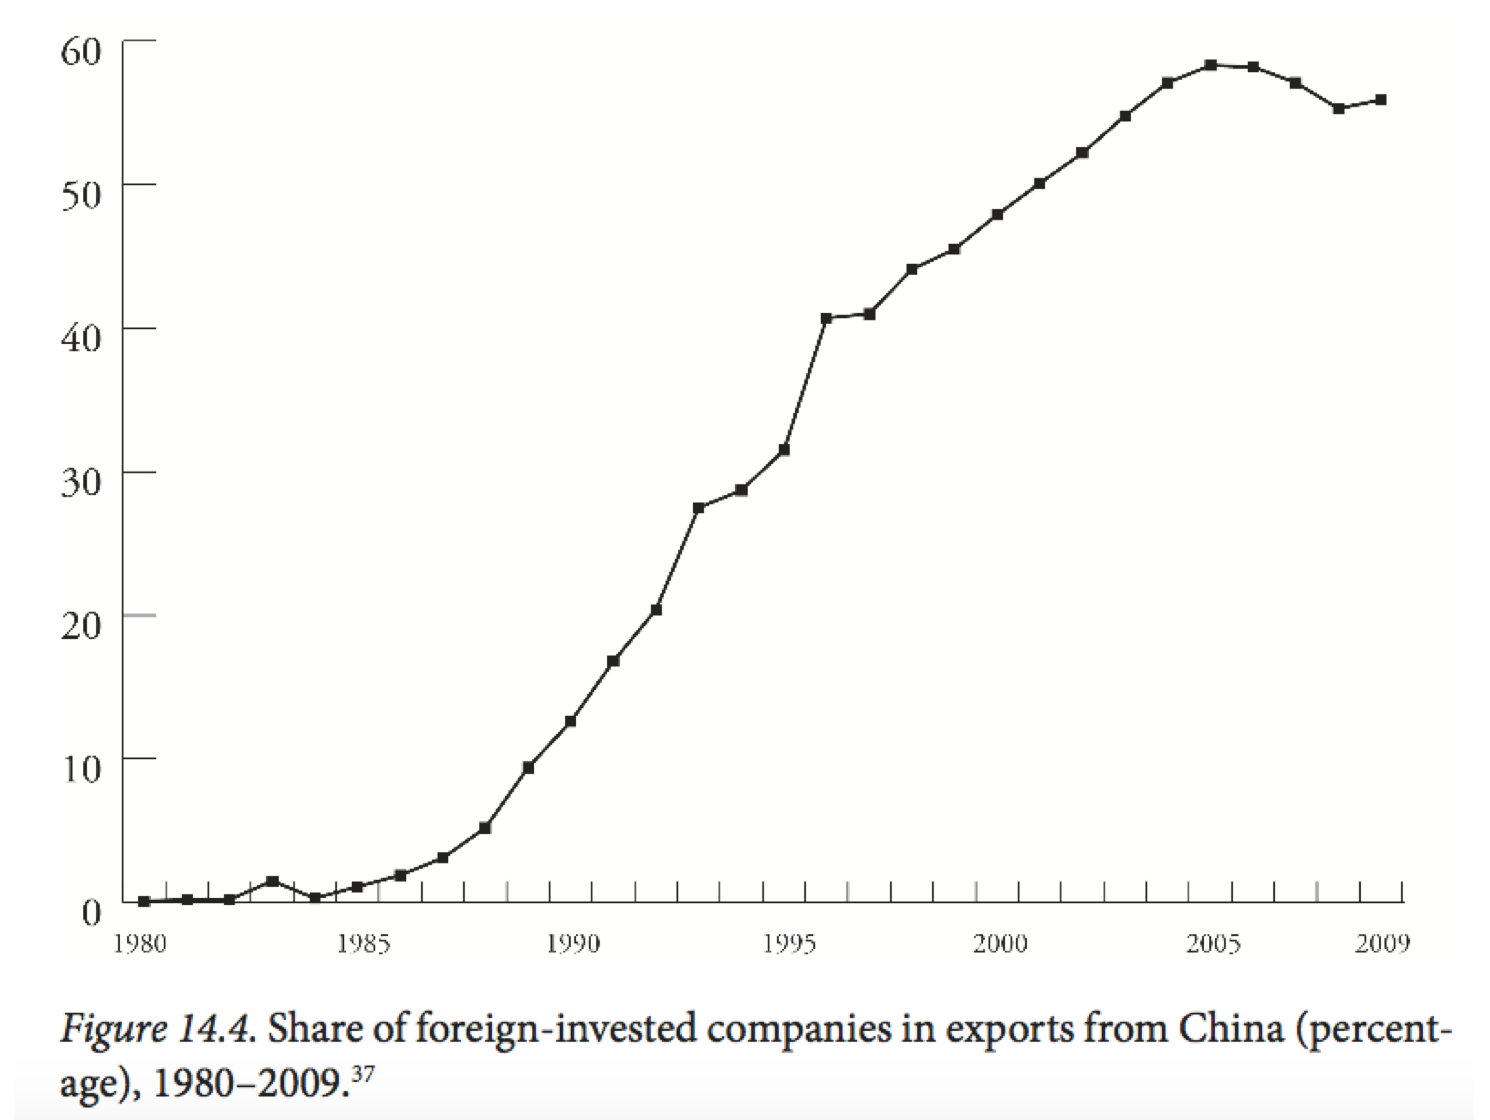 Data from Investment Promotion Agency, China's Ministry of Commerce, in Tang et al., 'Foreign', 35.